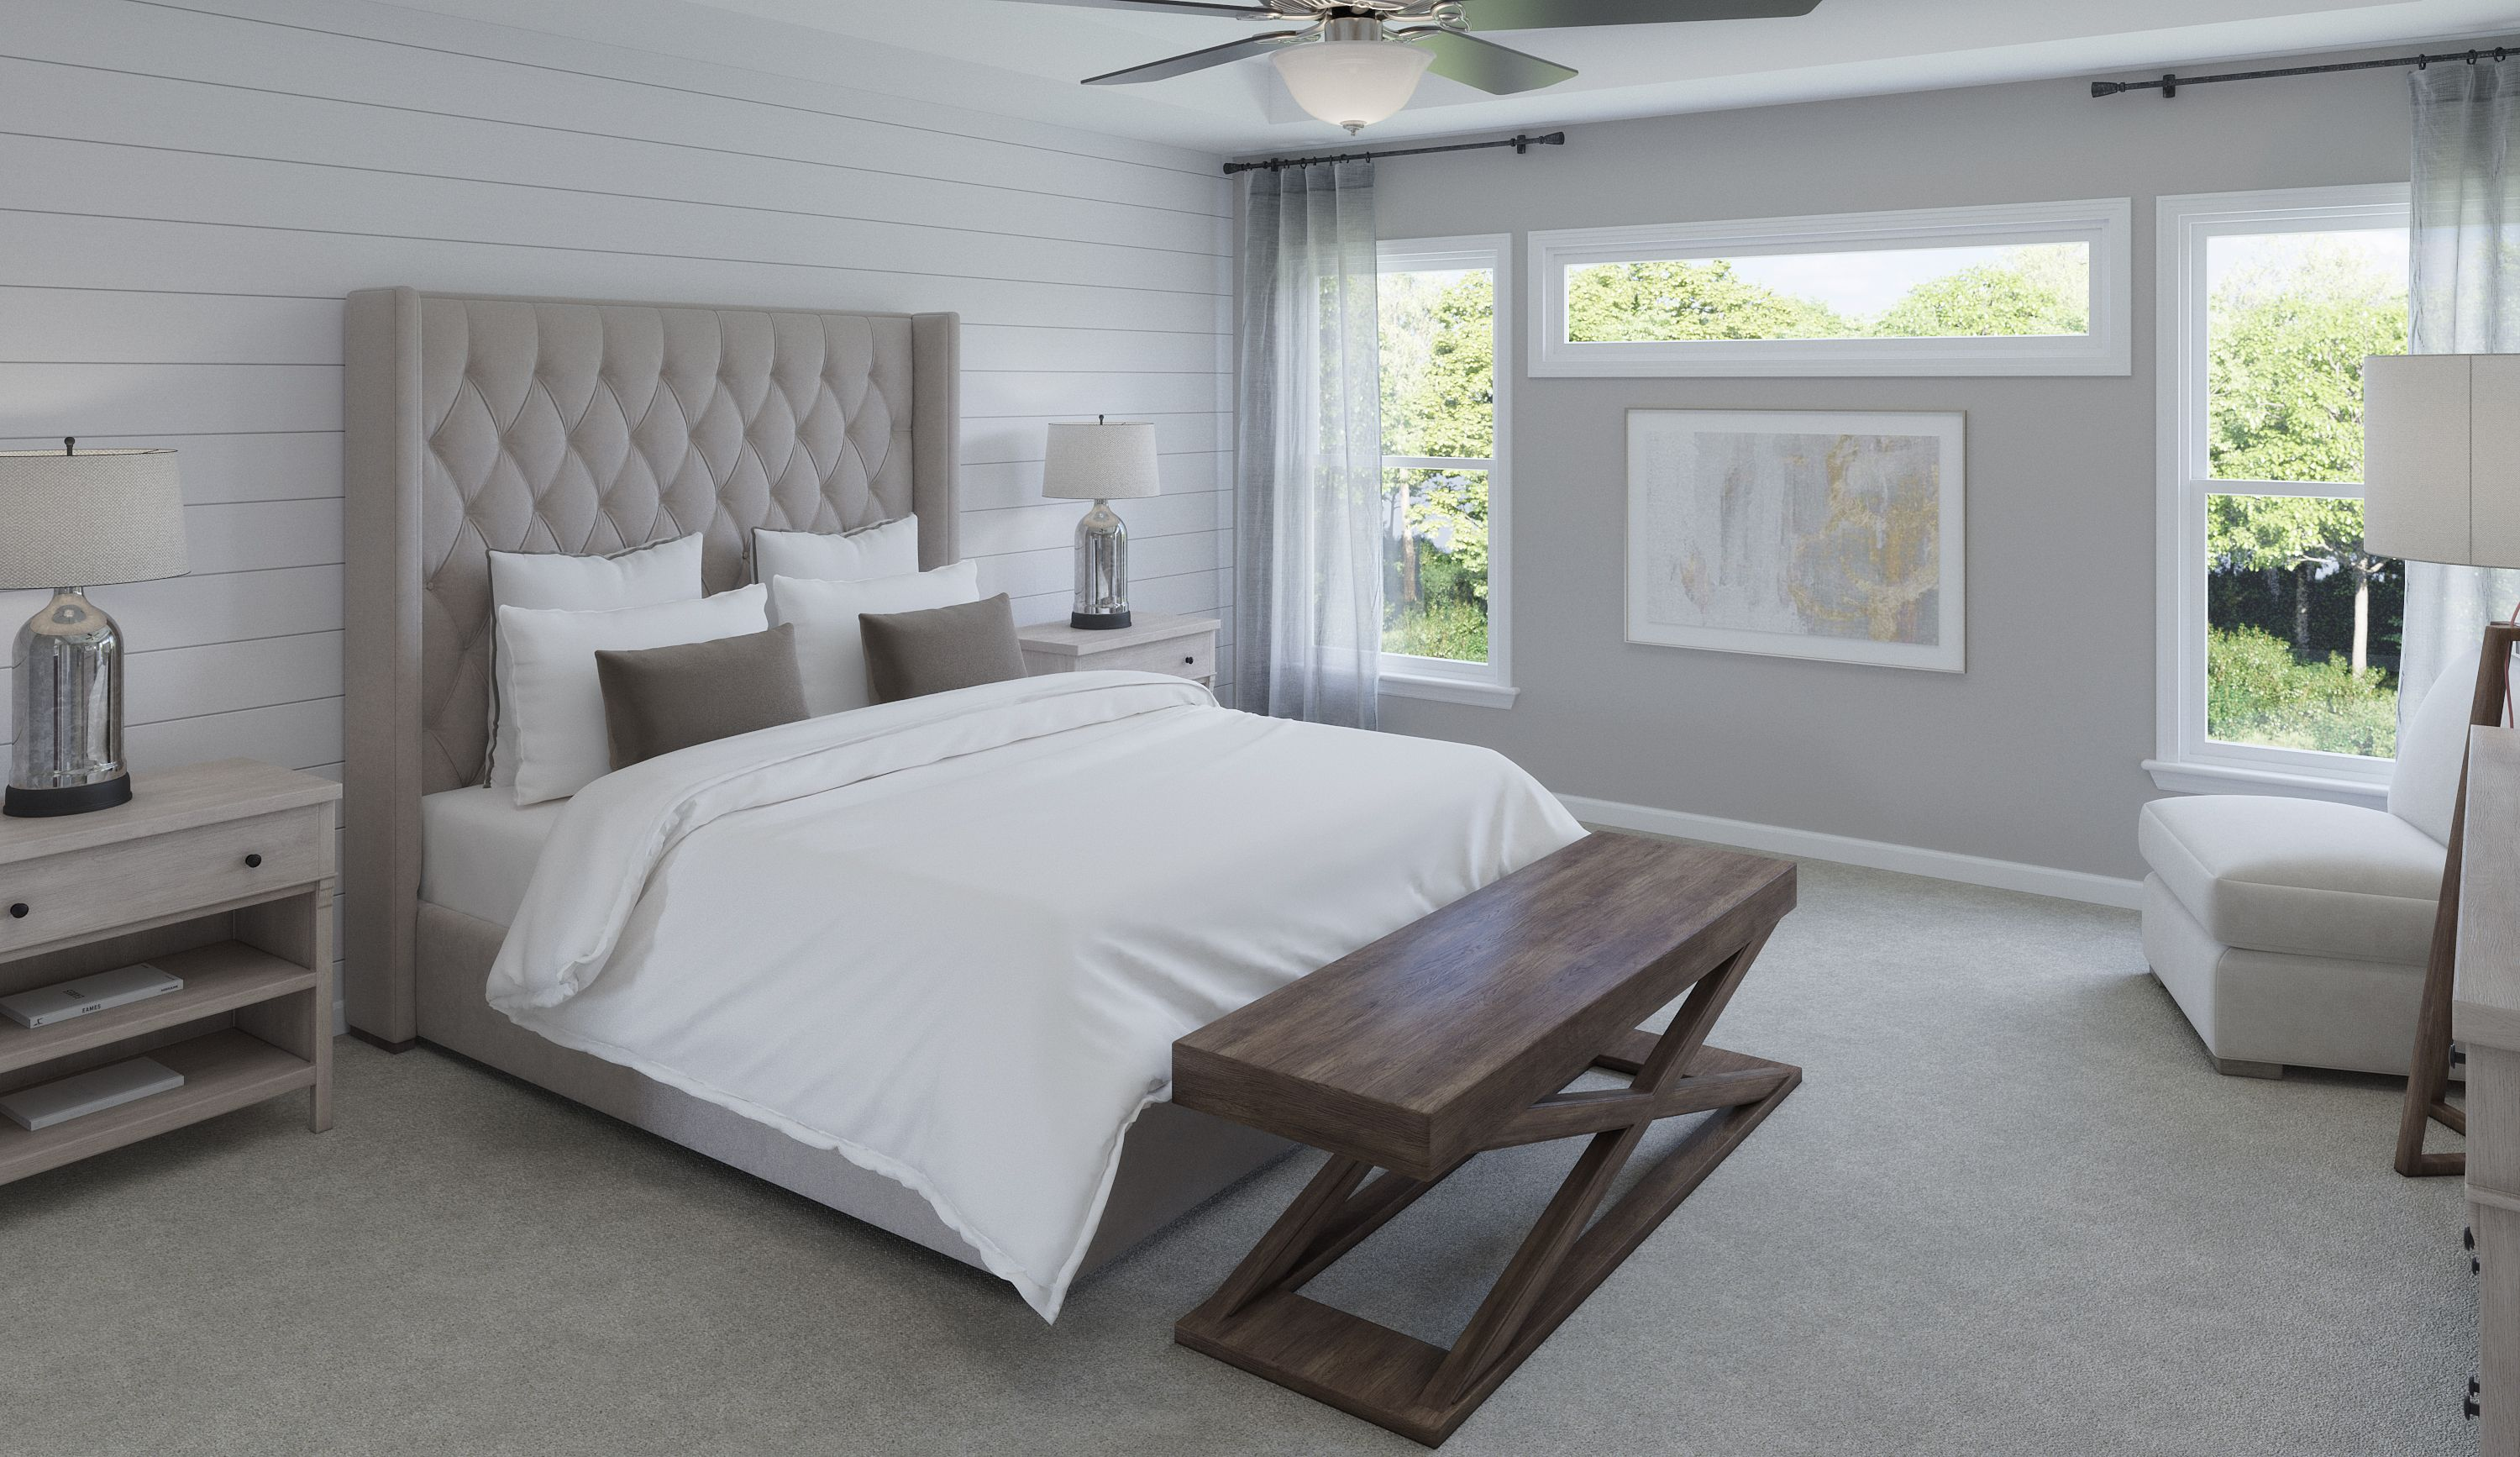 Bedroom featured in the Wyatt By Fischer Homes  in Louisville, KY